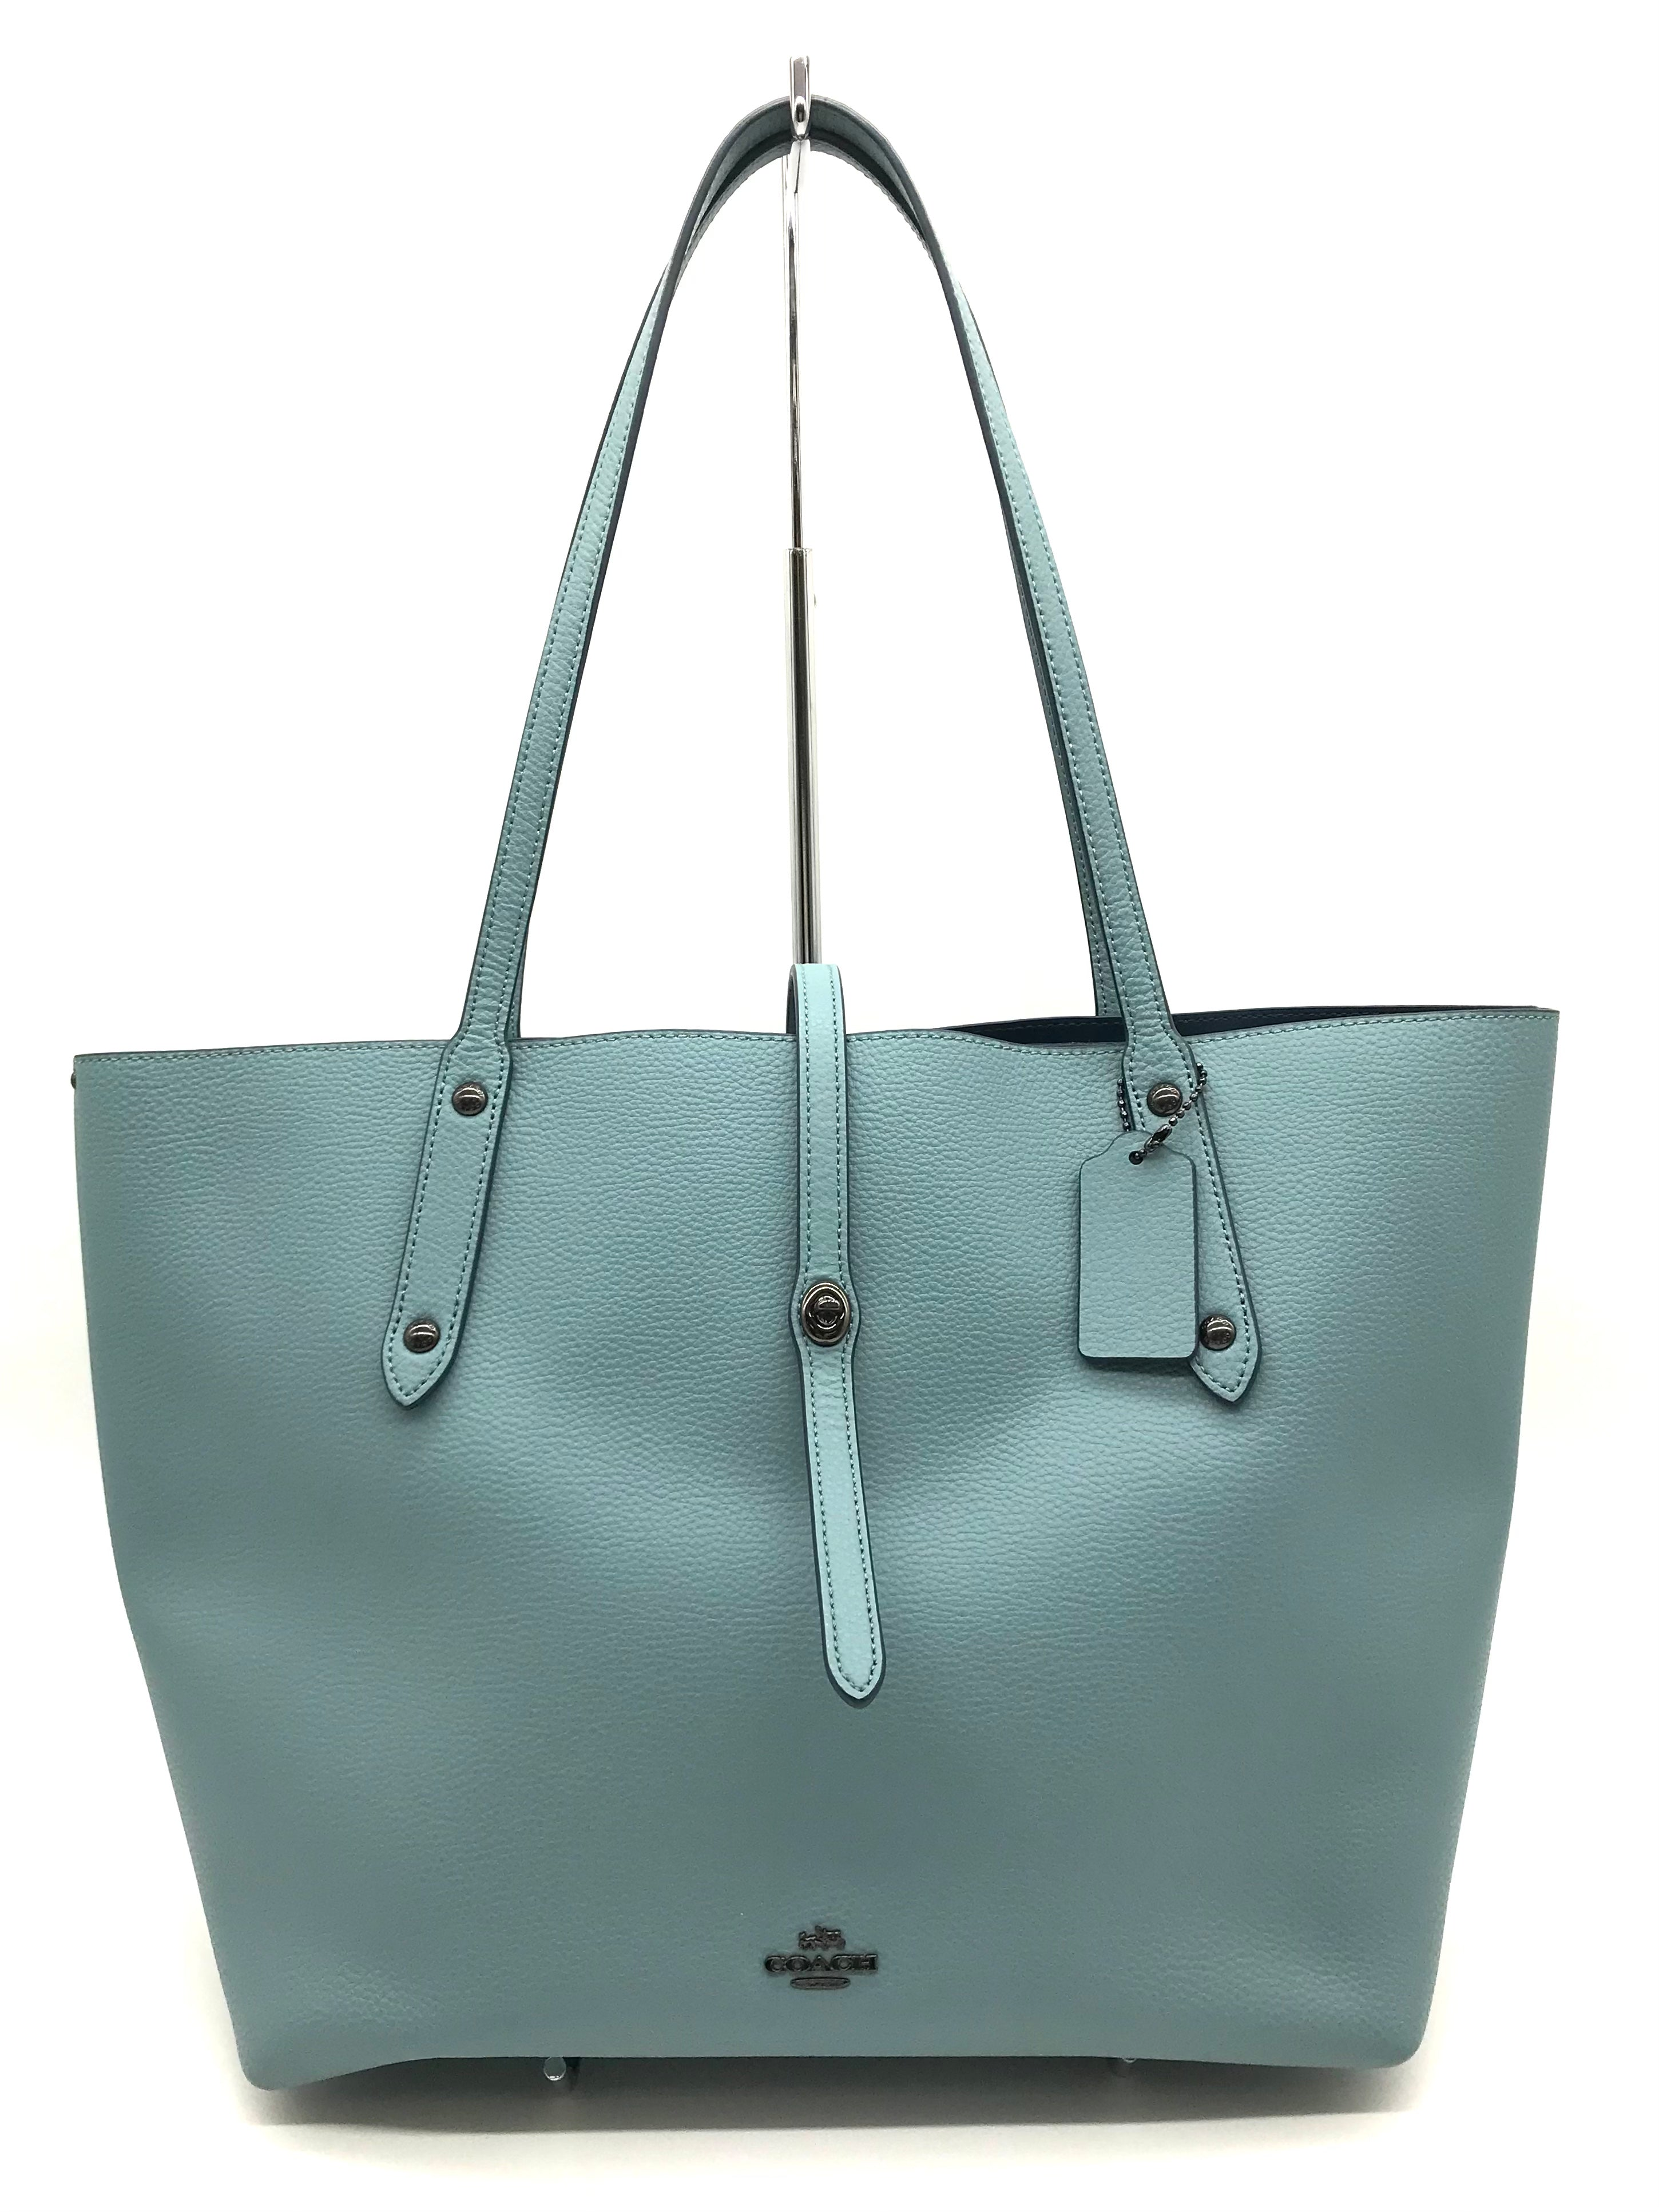 "Primary Photo - BRAND: COACH <BR>STYLE: HANDBAG DESIGNER <BR>COLOR: TEAL <BR>SIZE: LARGE 11""H X 18""L X 6.8""W<BR>HANDLE DROP: 11""<BR>SKU: 262-26241-43323<BR>LIKE NEW CONDITION"